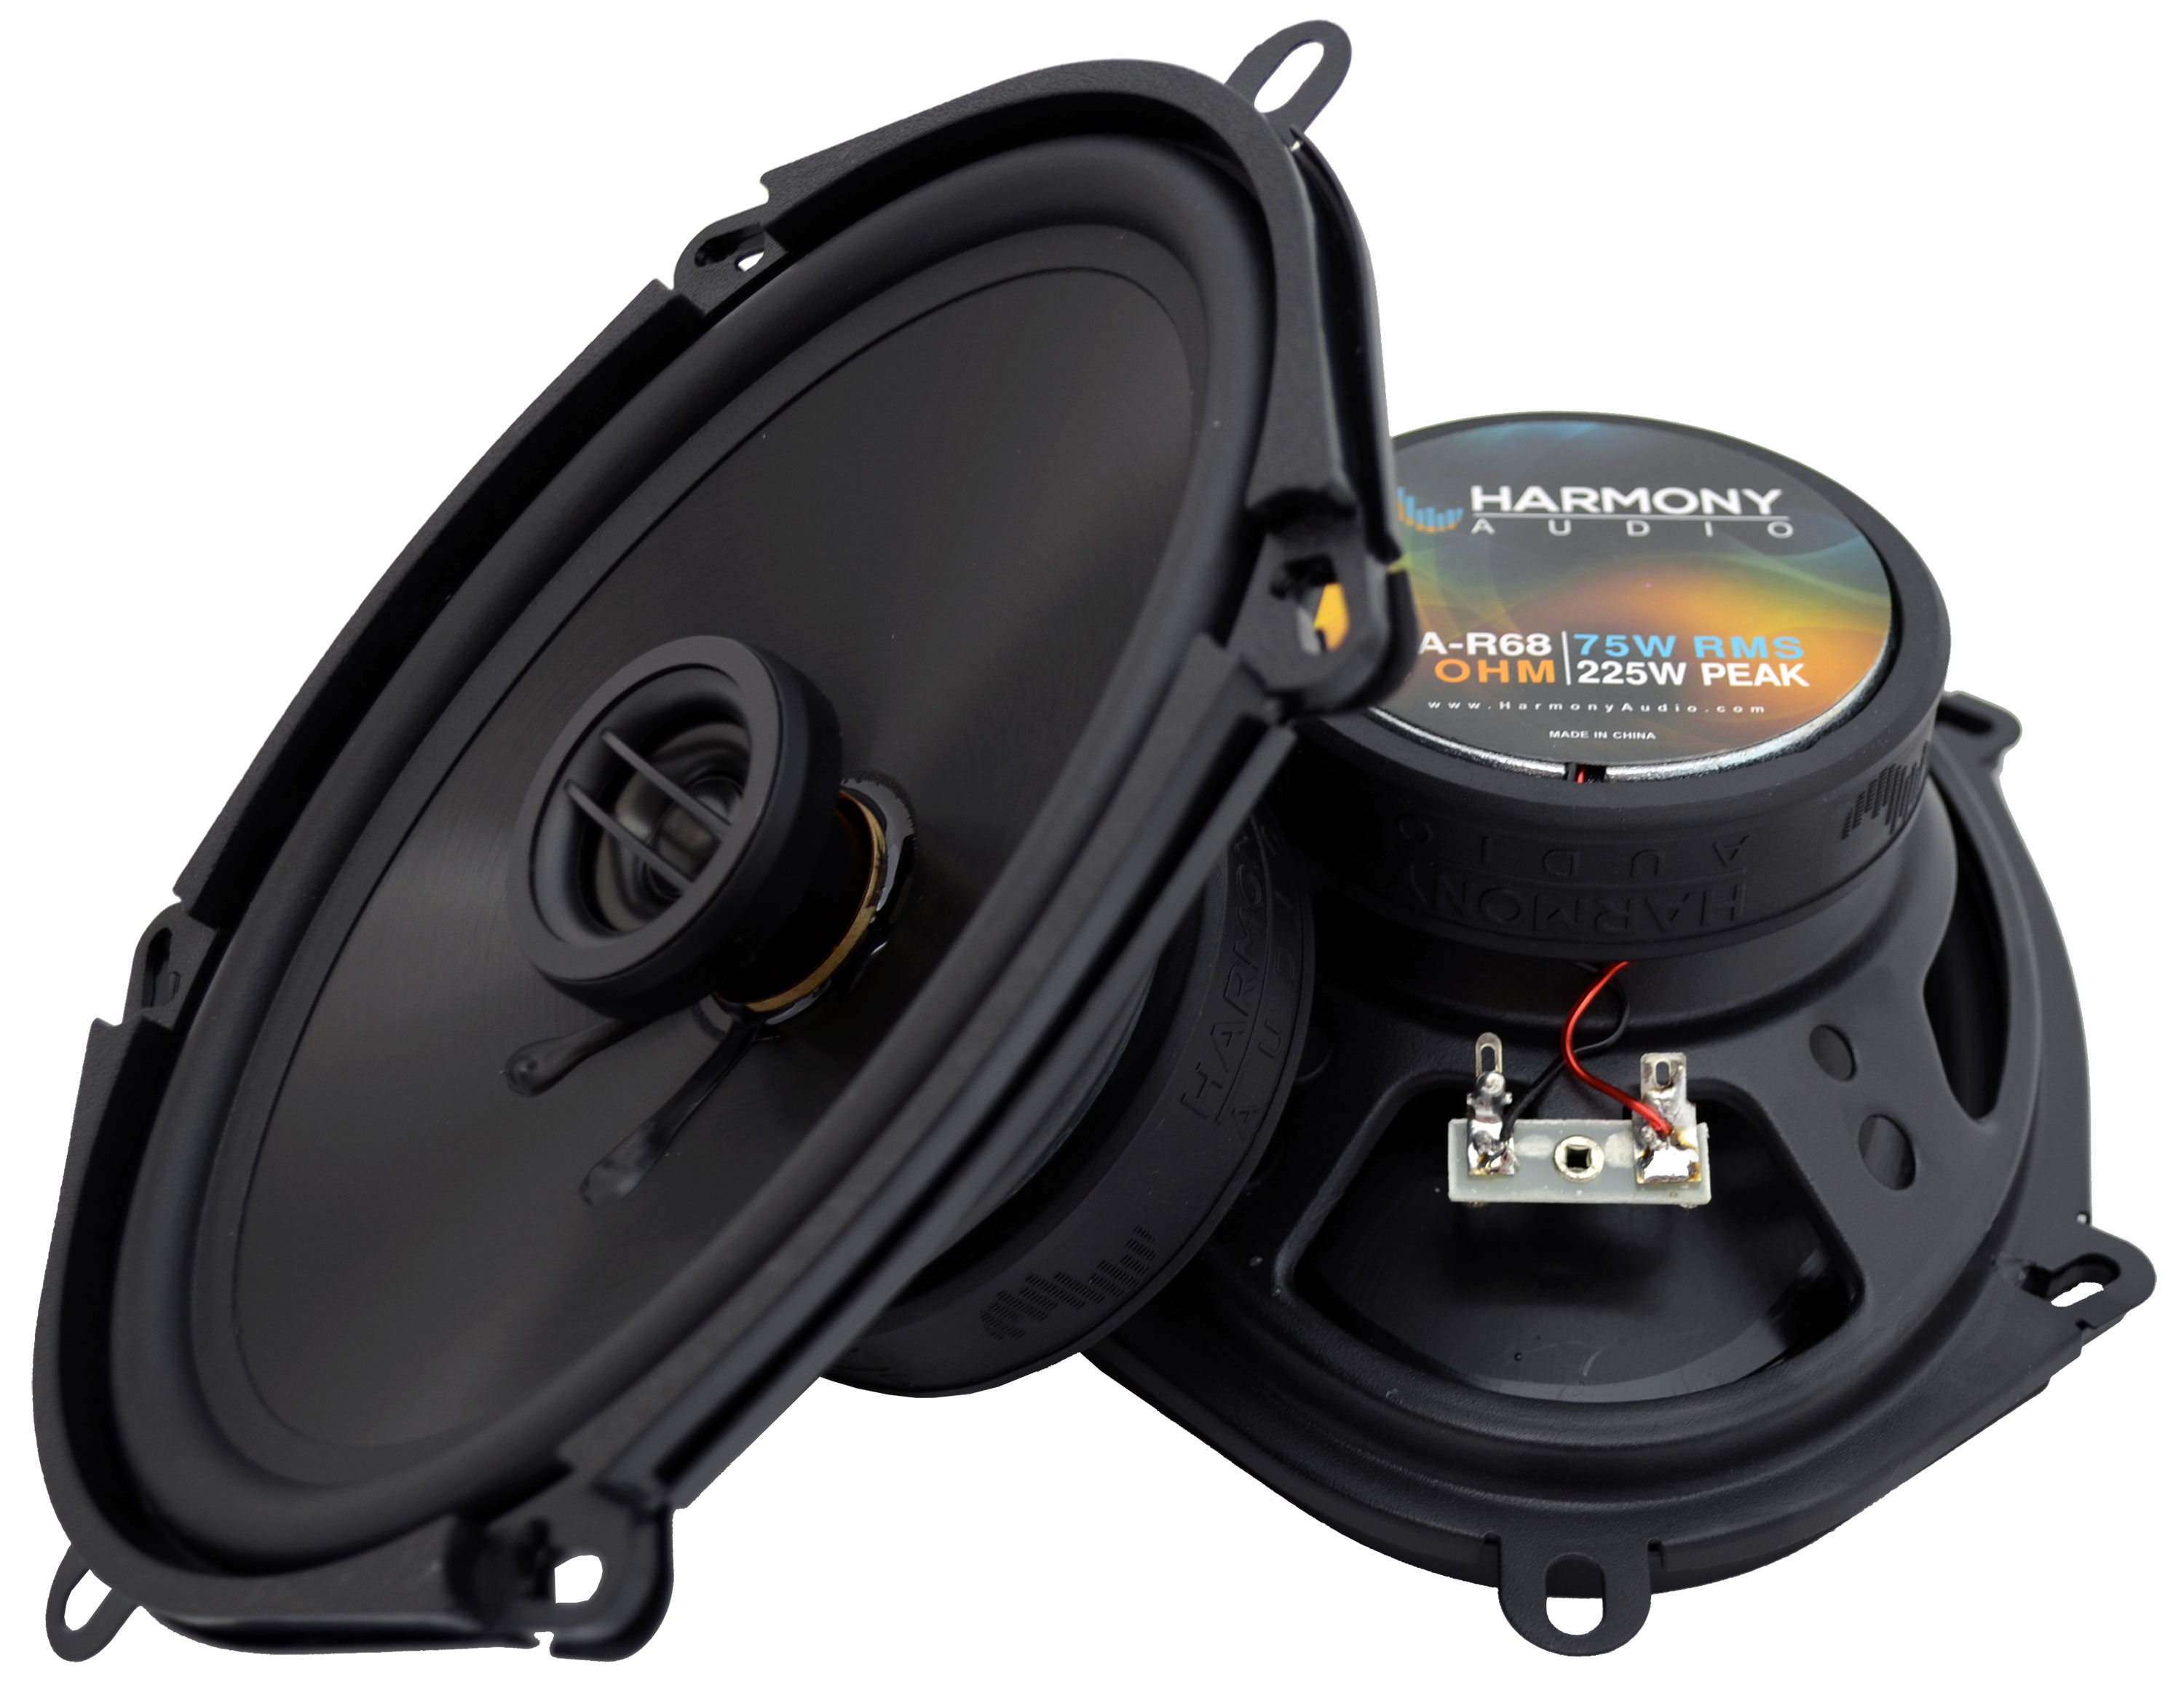 Fits Mazda MX-5 Miata 1998-2014 Front Door Replacement Harmony HA-R68 Speakers